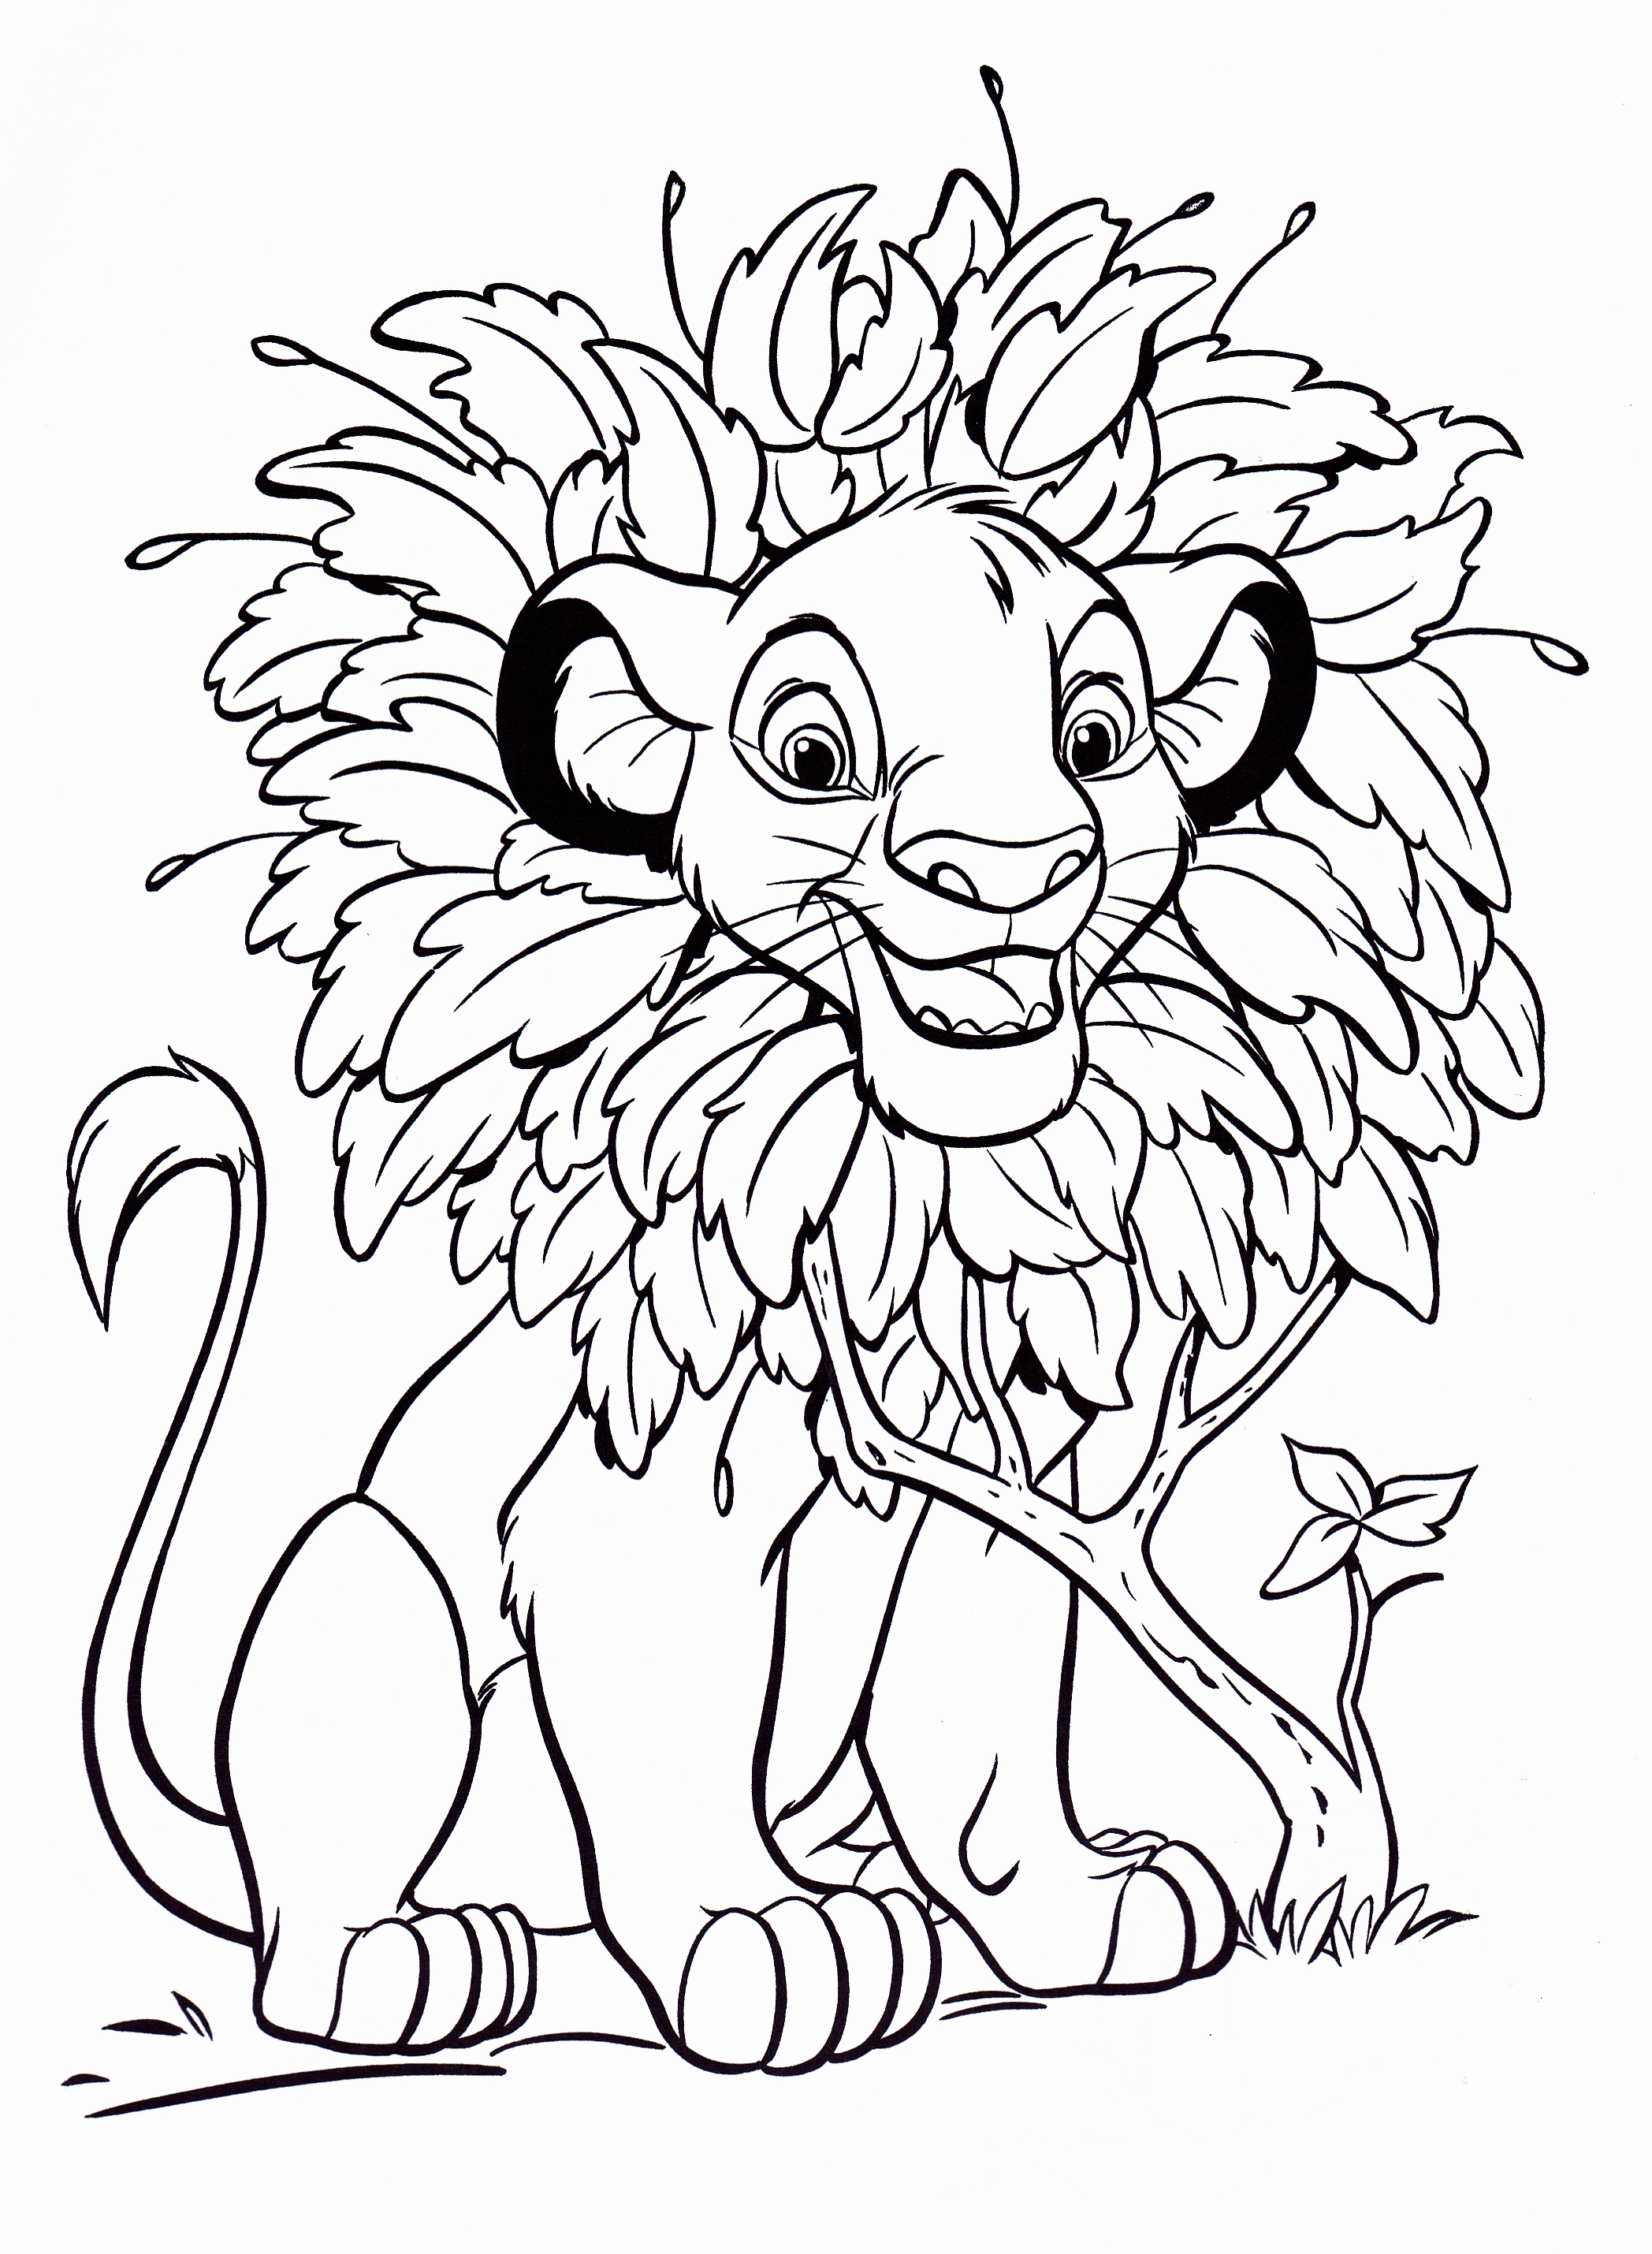 Walt Disney Coloring Pages - Simba